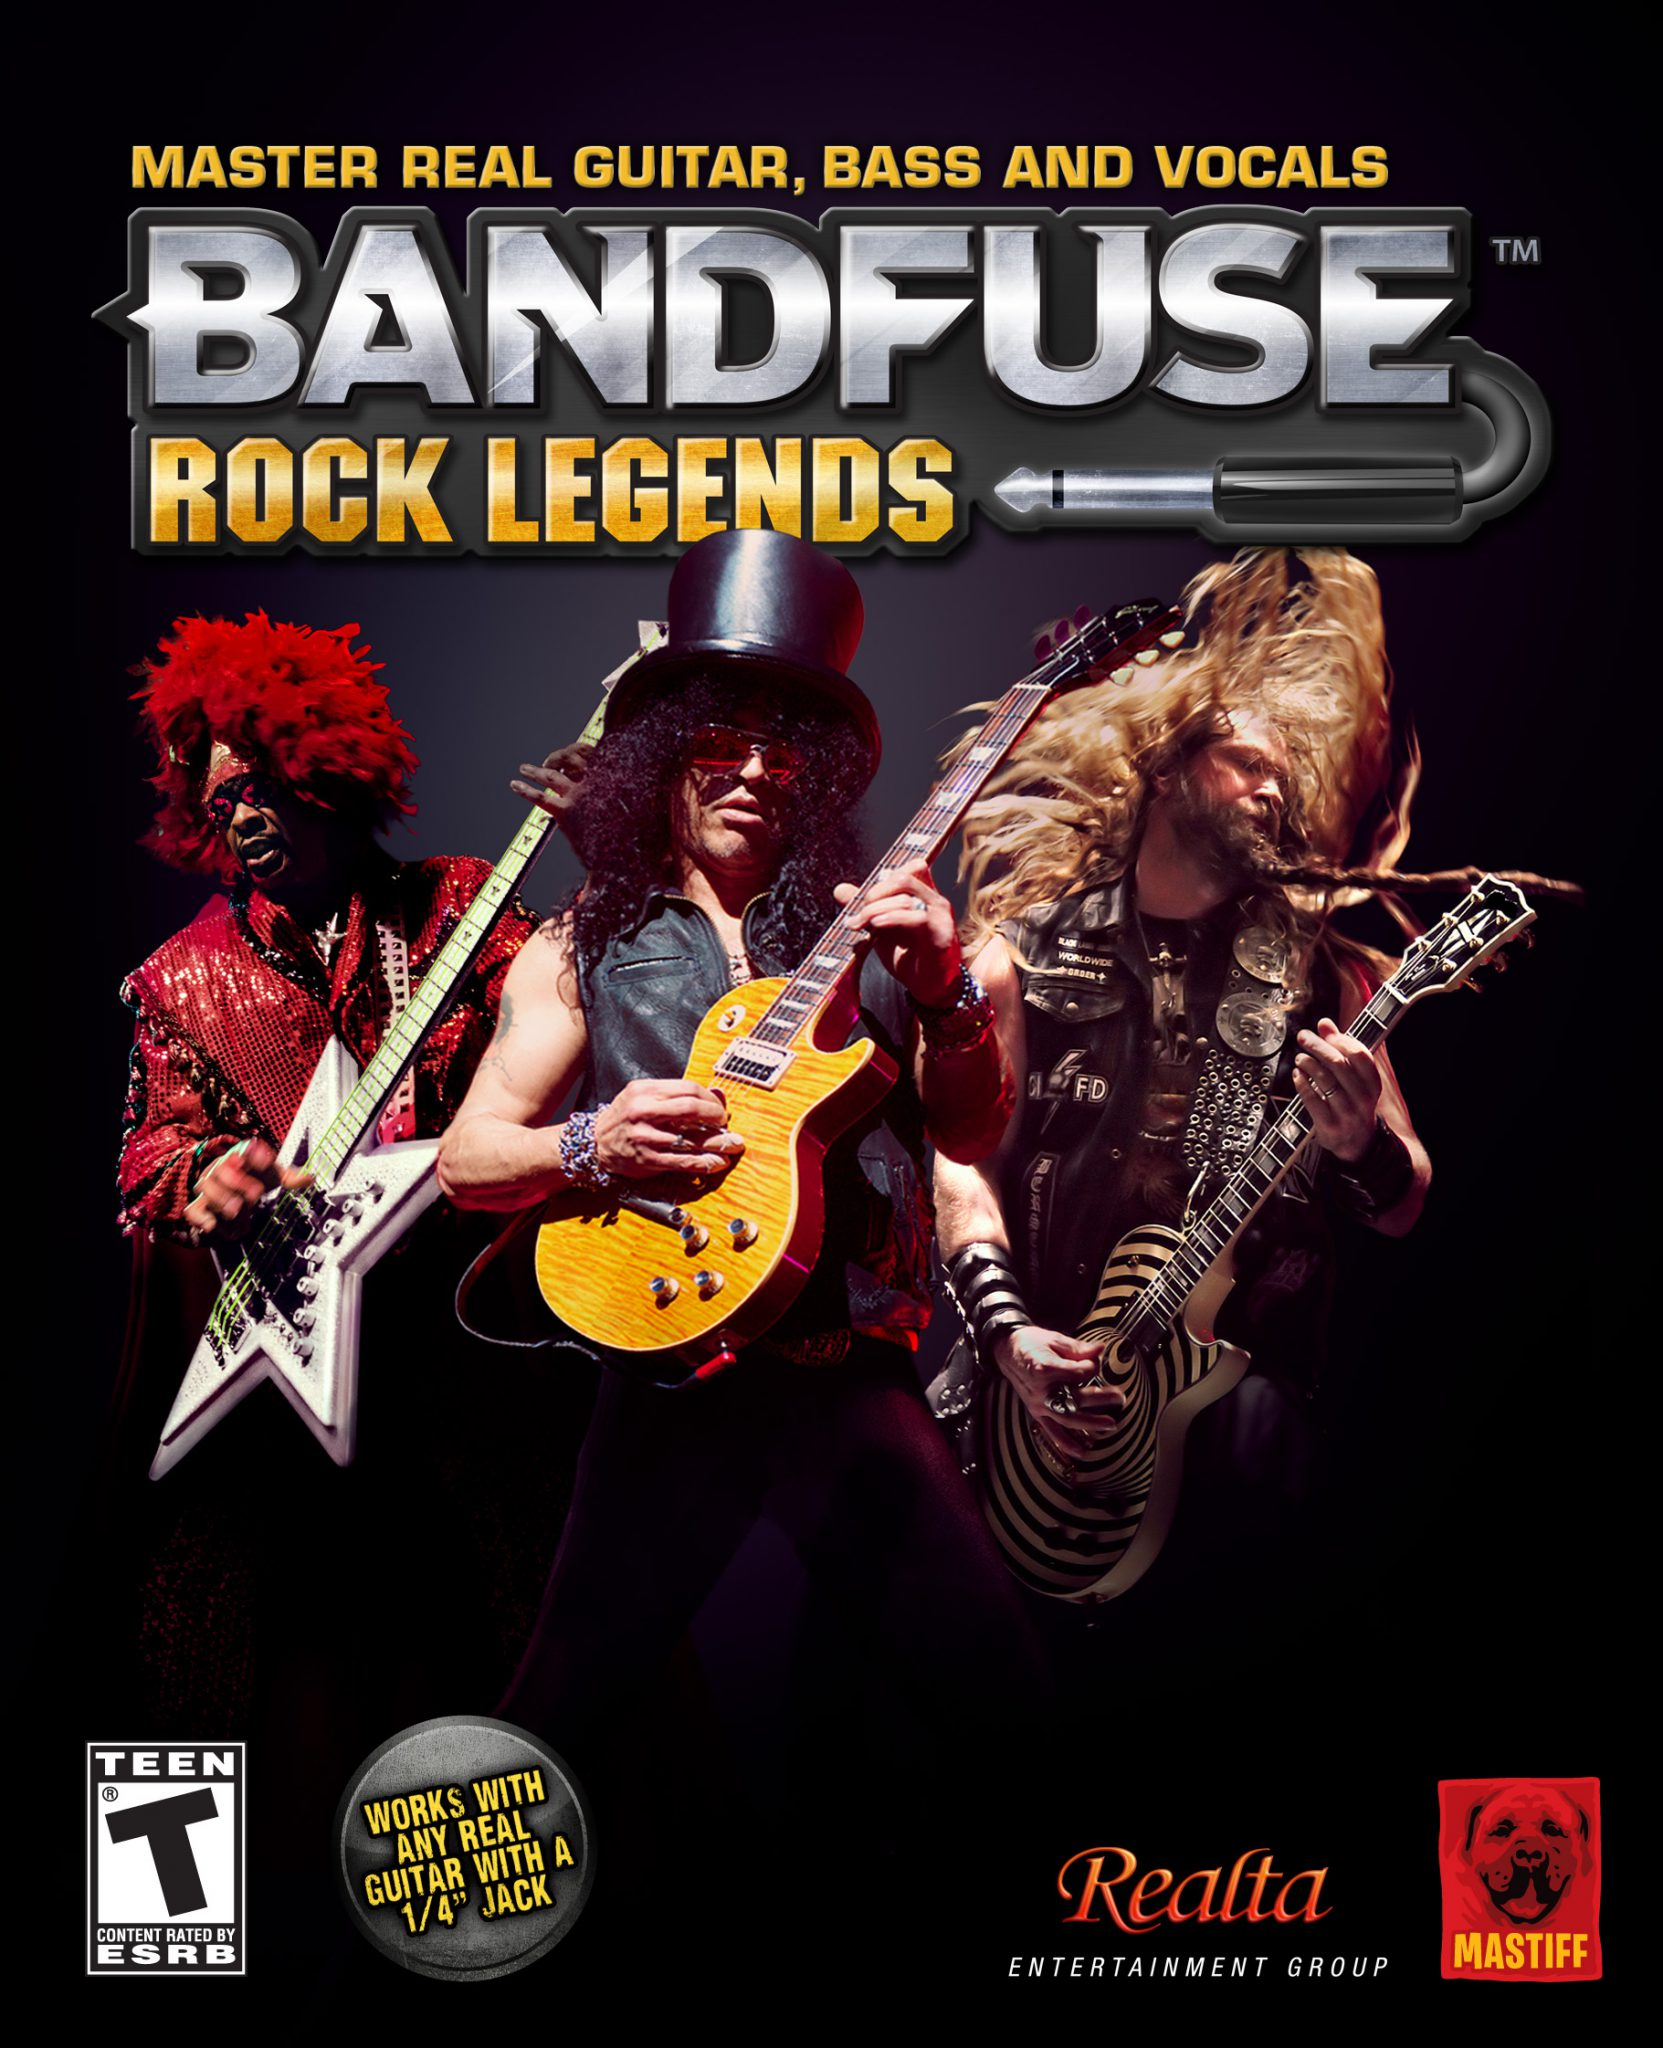 BandFuse: Rock Legends Love Bites E3 Video